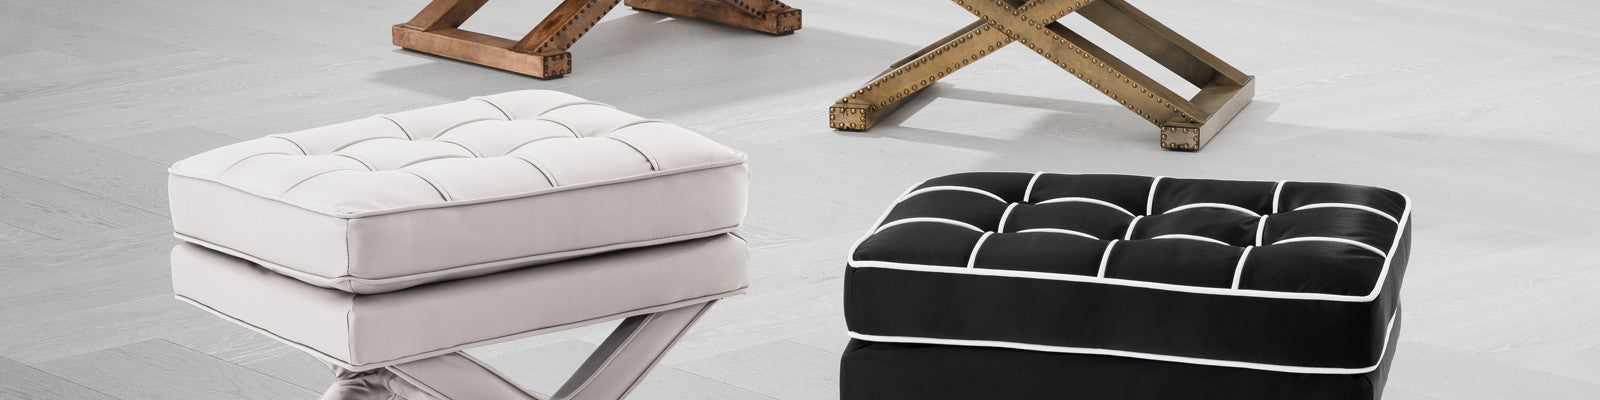 Eichholtz Stools & Ottomans | Living Room Furniture | OROA - Modern & Luxury Furniture Online